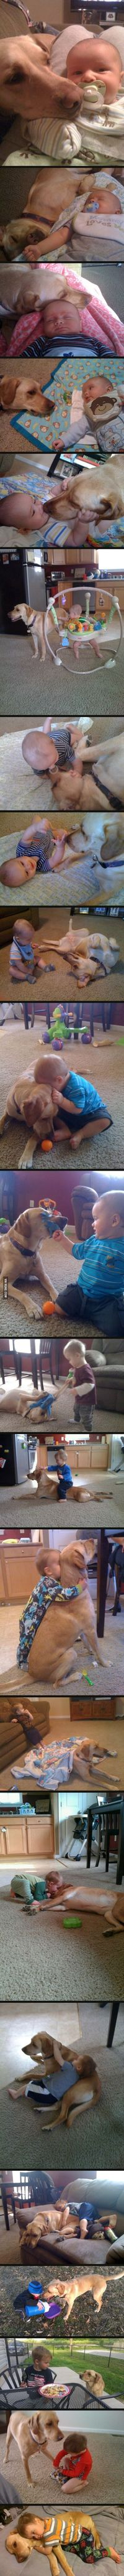 Best friends for 2 1/2 years. My heart just melted